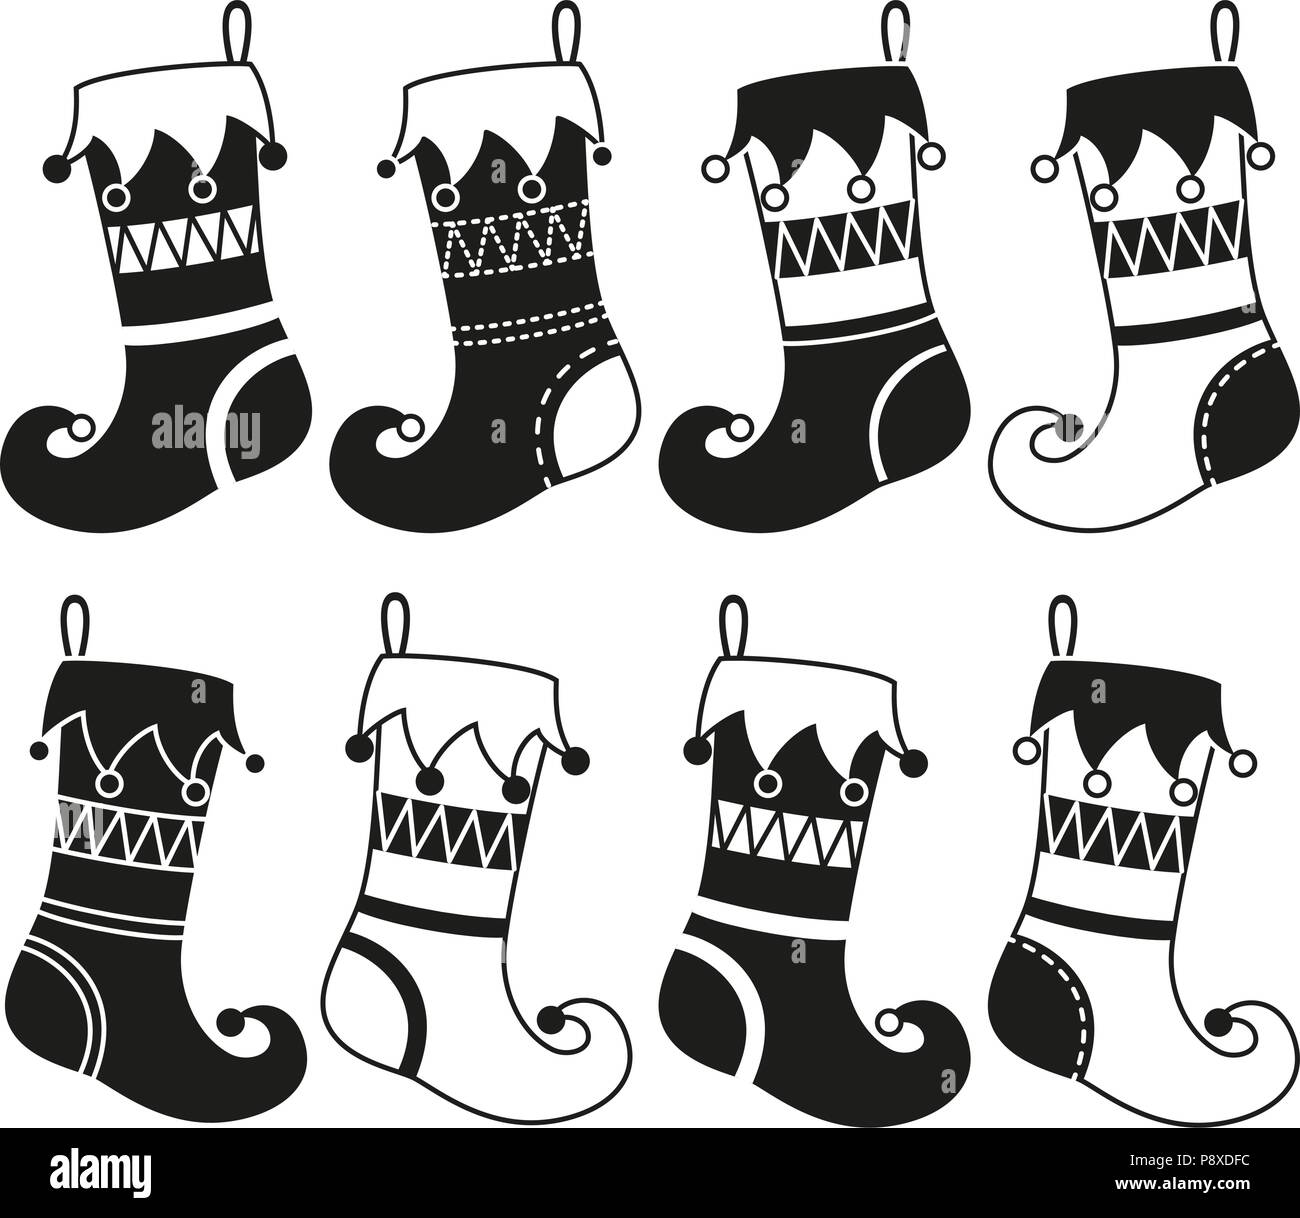 Black And White Christmas Stockings.Black And White 8 Christmas Stocking Silhouette Set Holiday